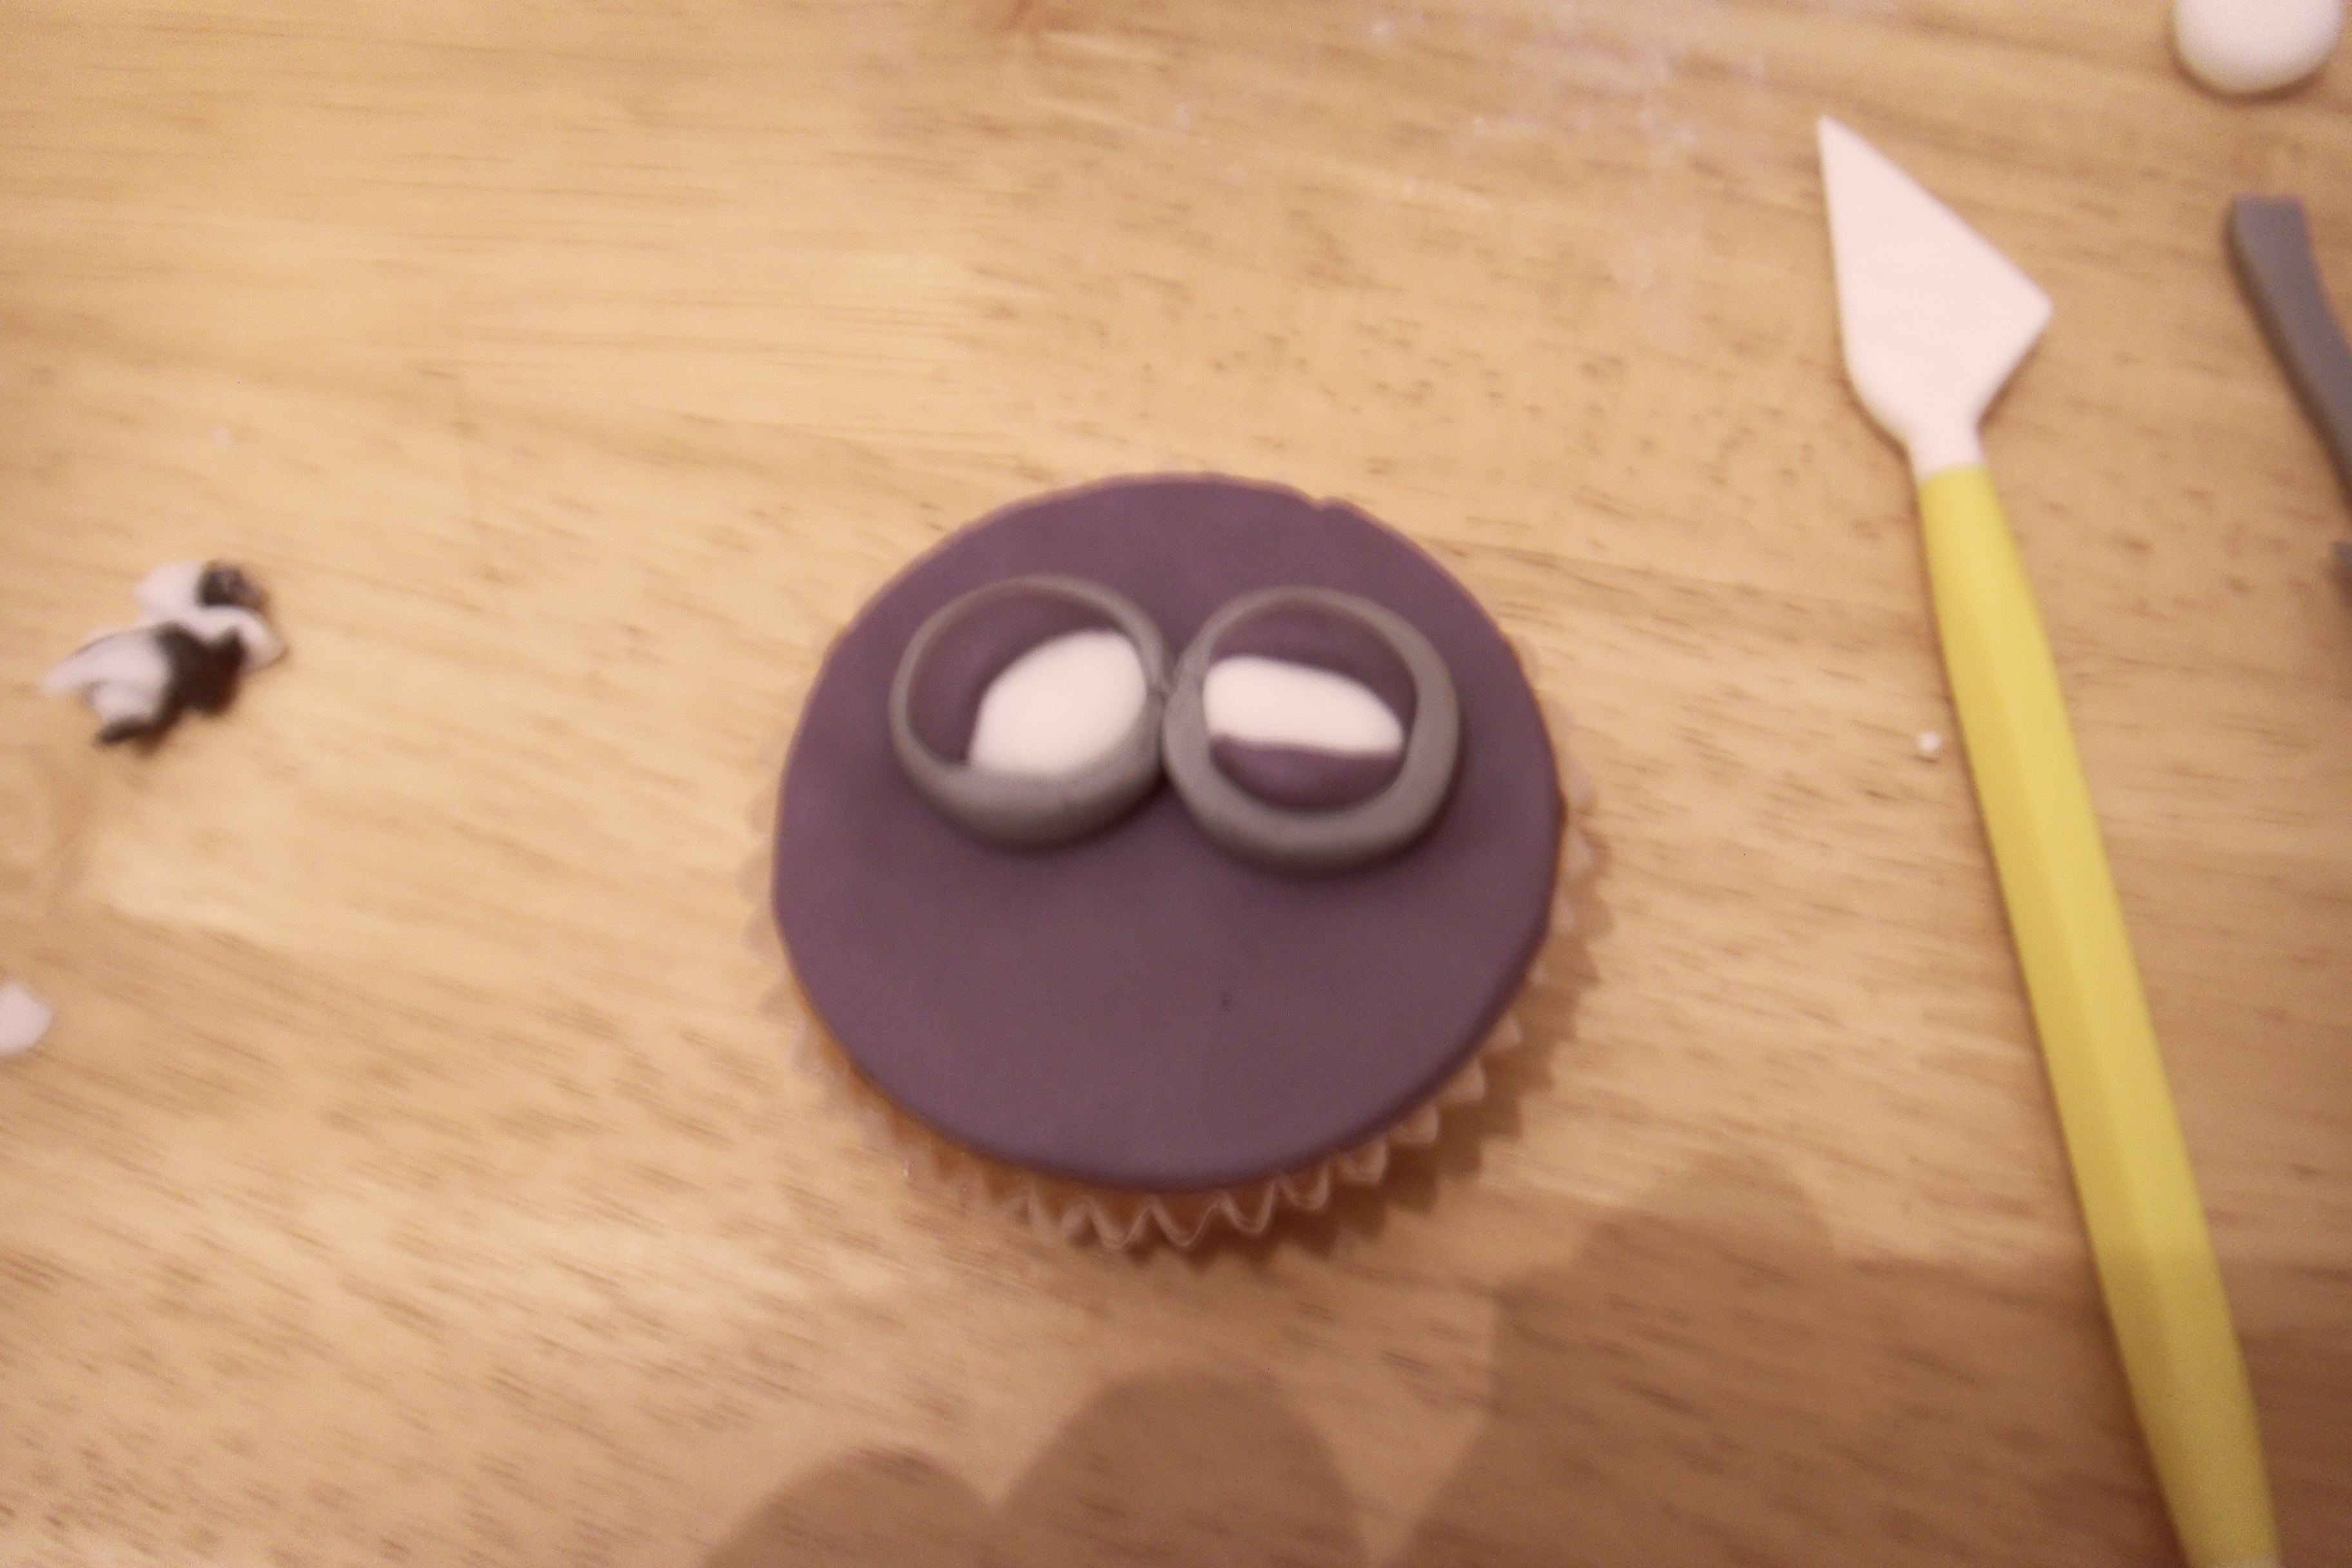 Picture of 2 Eyed Purple Minion.